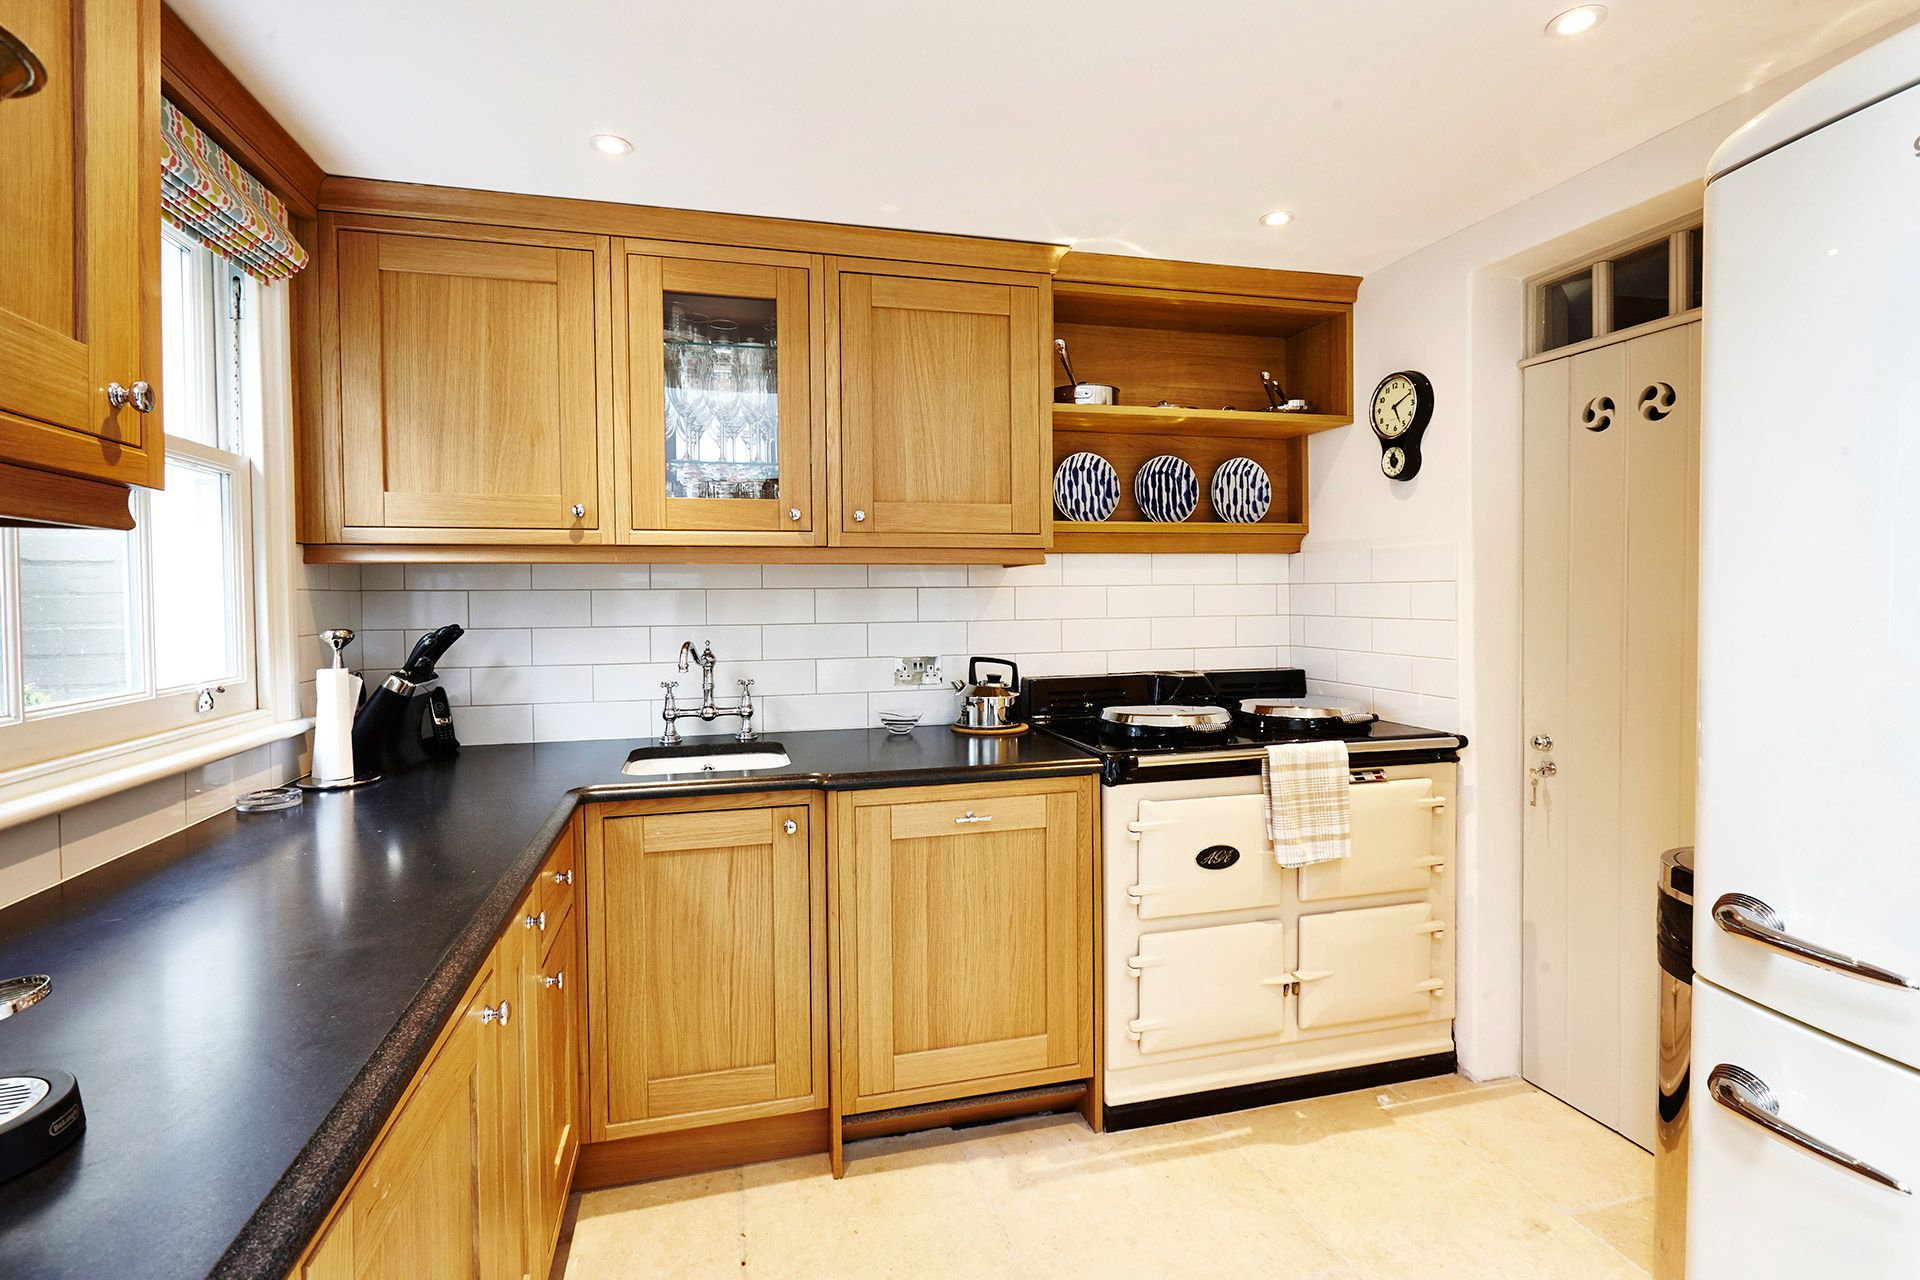 Three oven Aga cooker in the Wellington vacation rental offered by London Perfect